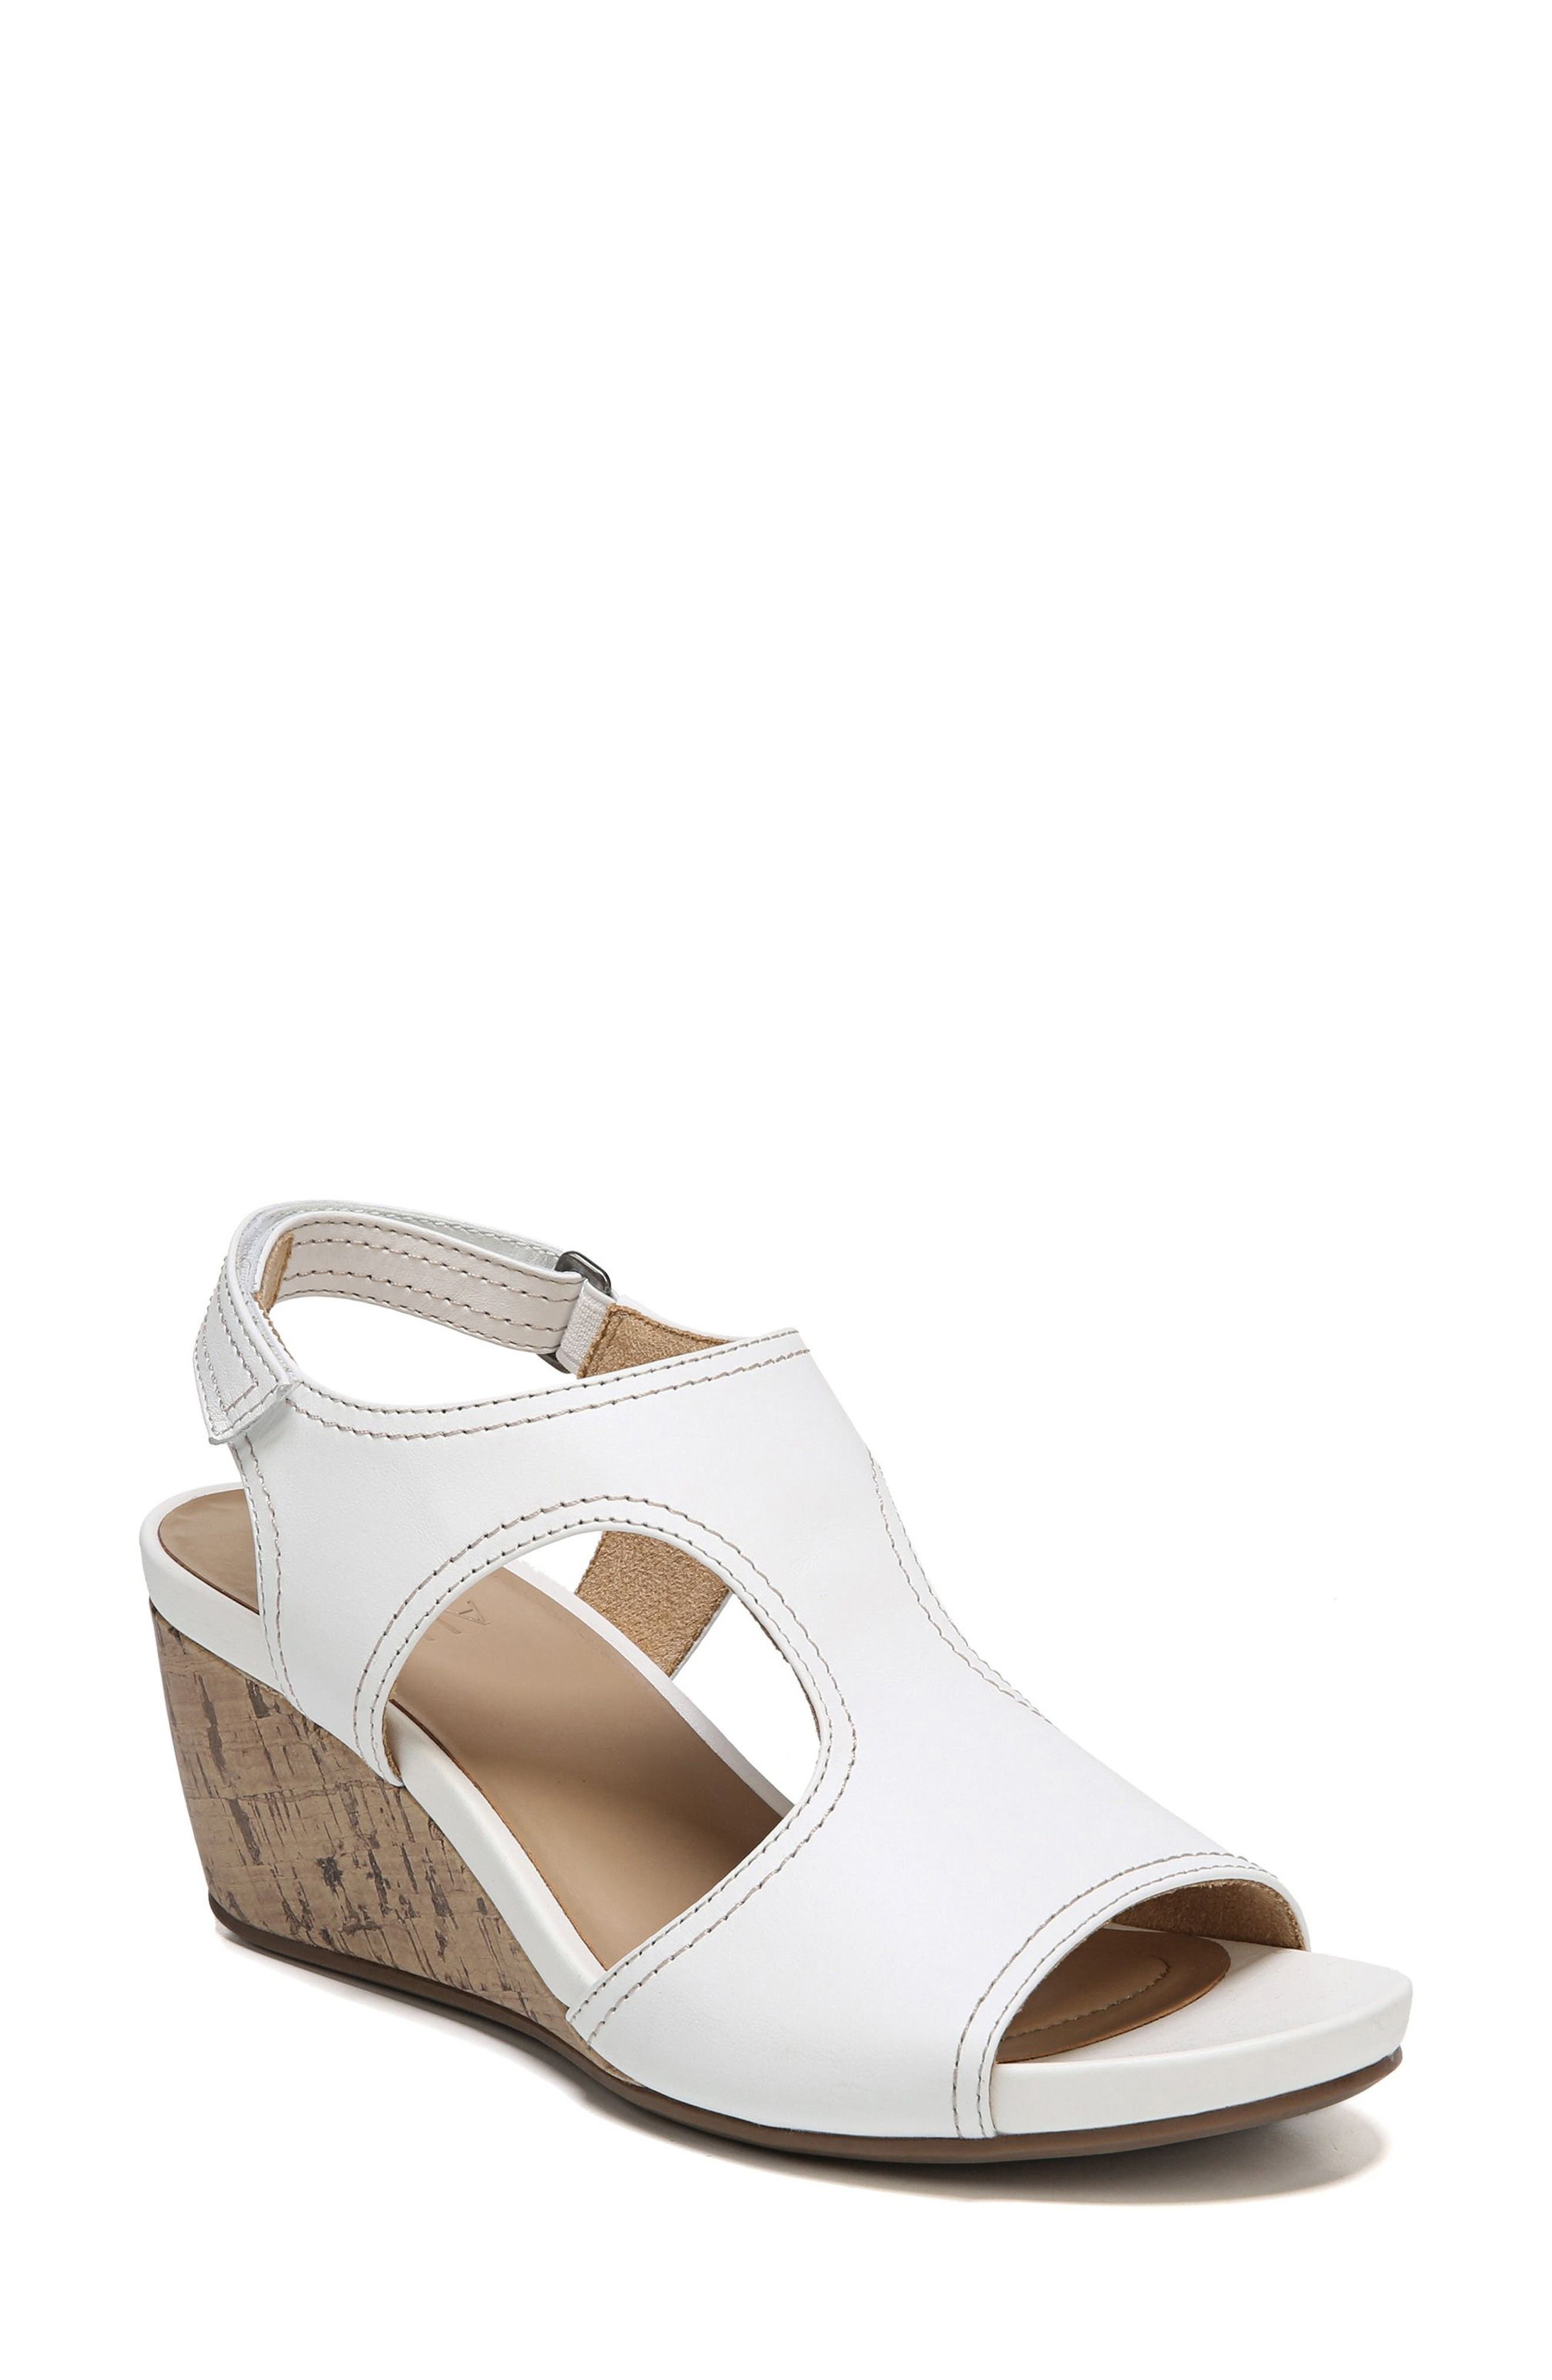 Cinda Wedge Sandal,                         Main,                         color, White Leather